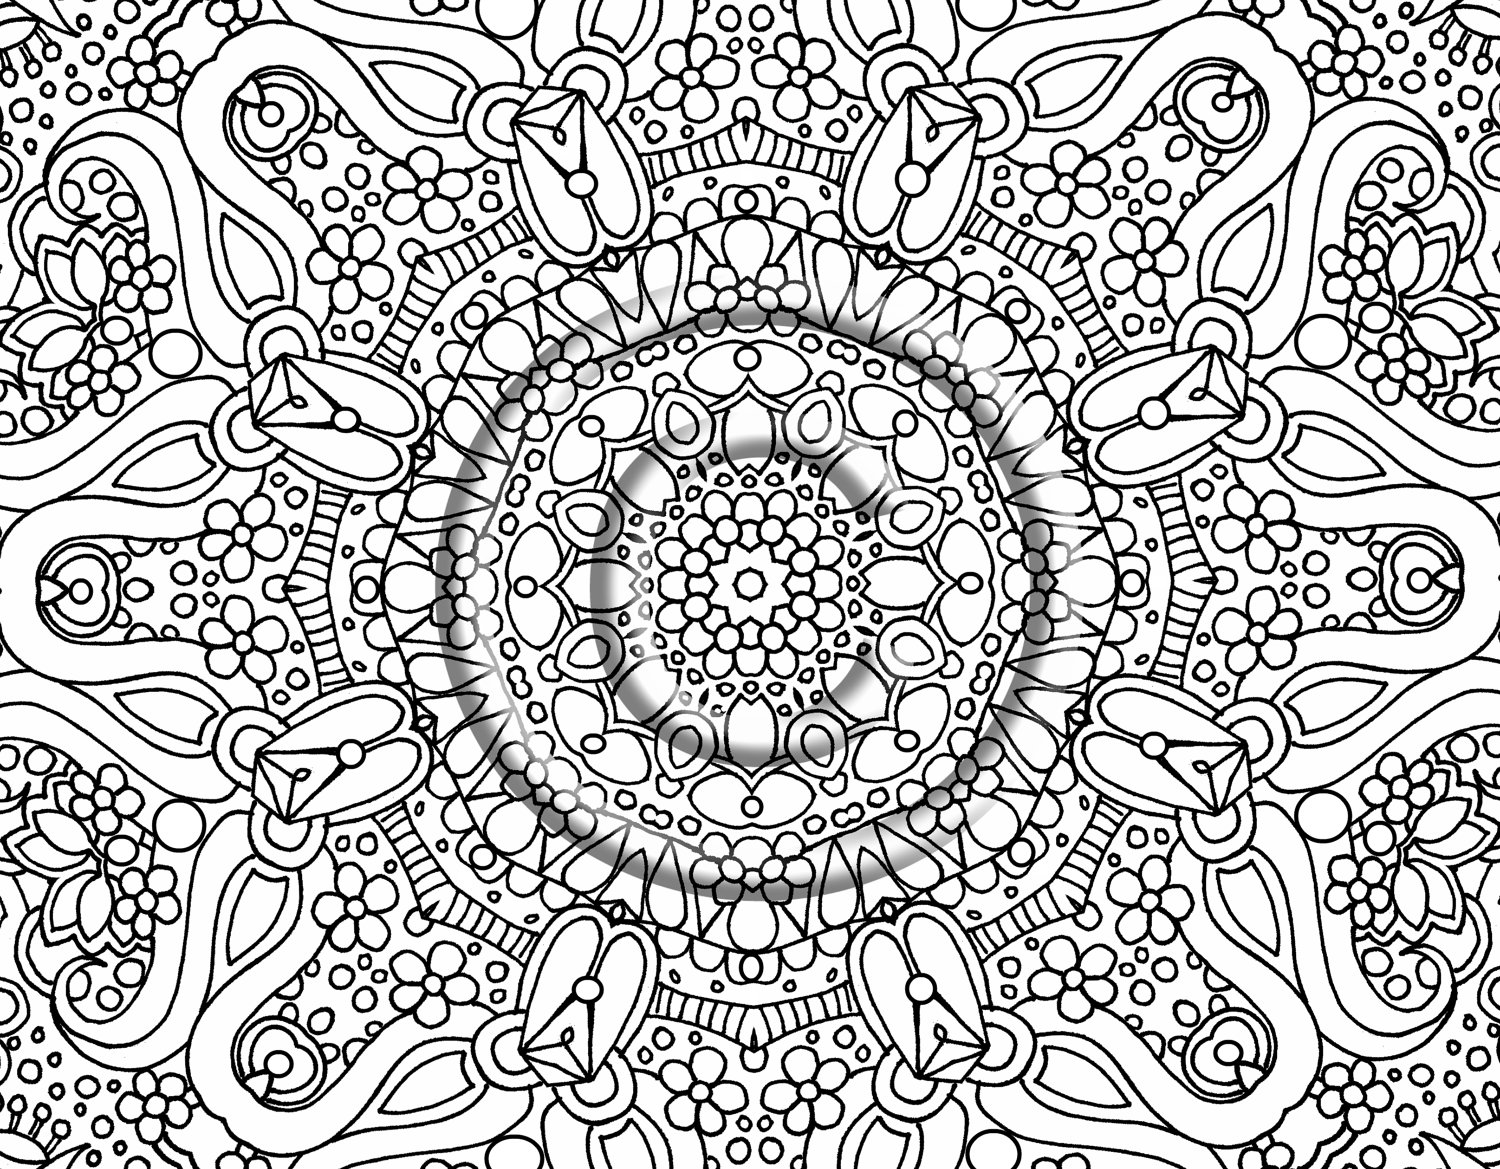 design pictures to color ornamental floral mandala mandalas adult coloring pages color pictures to design